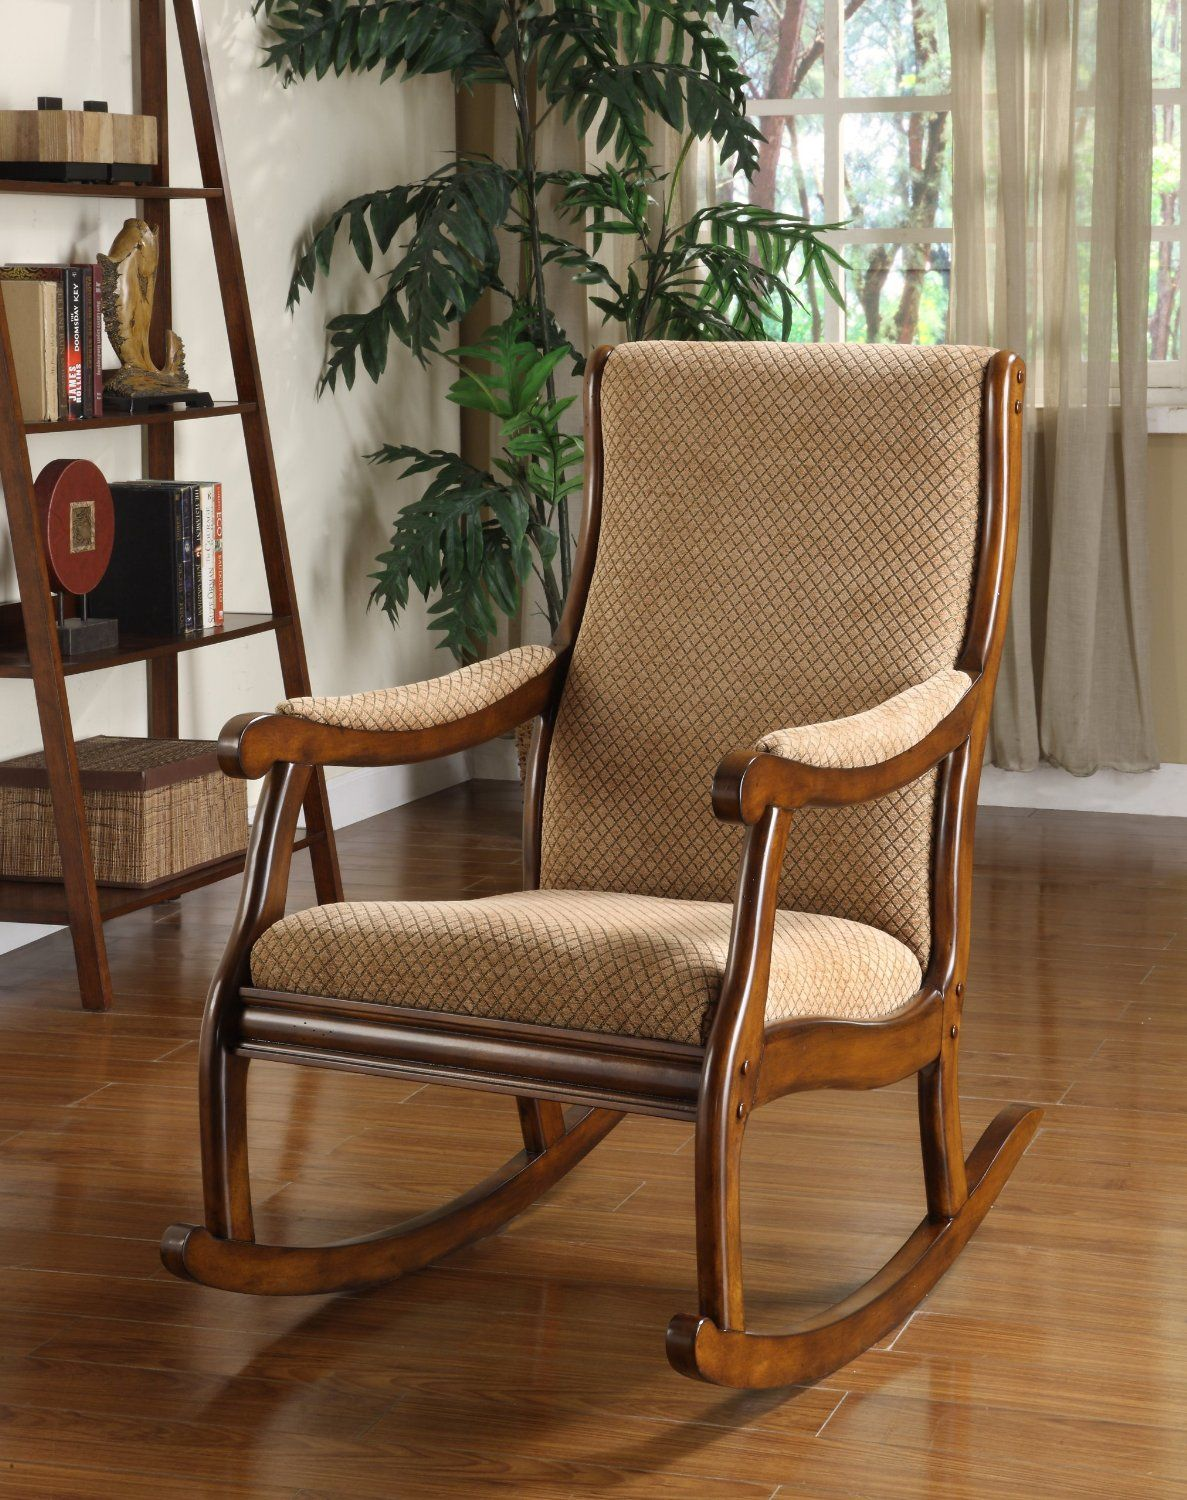 indoor rocking chair